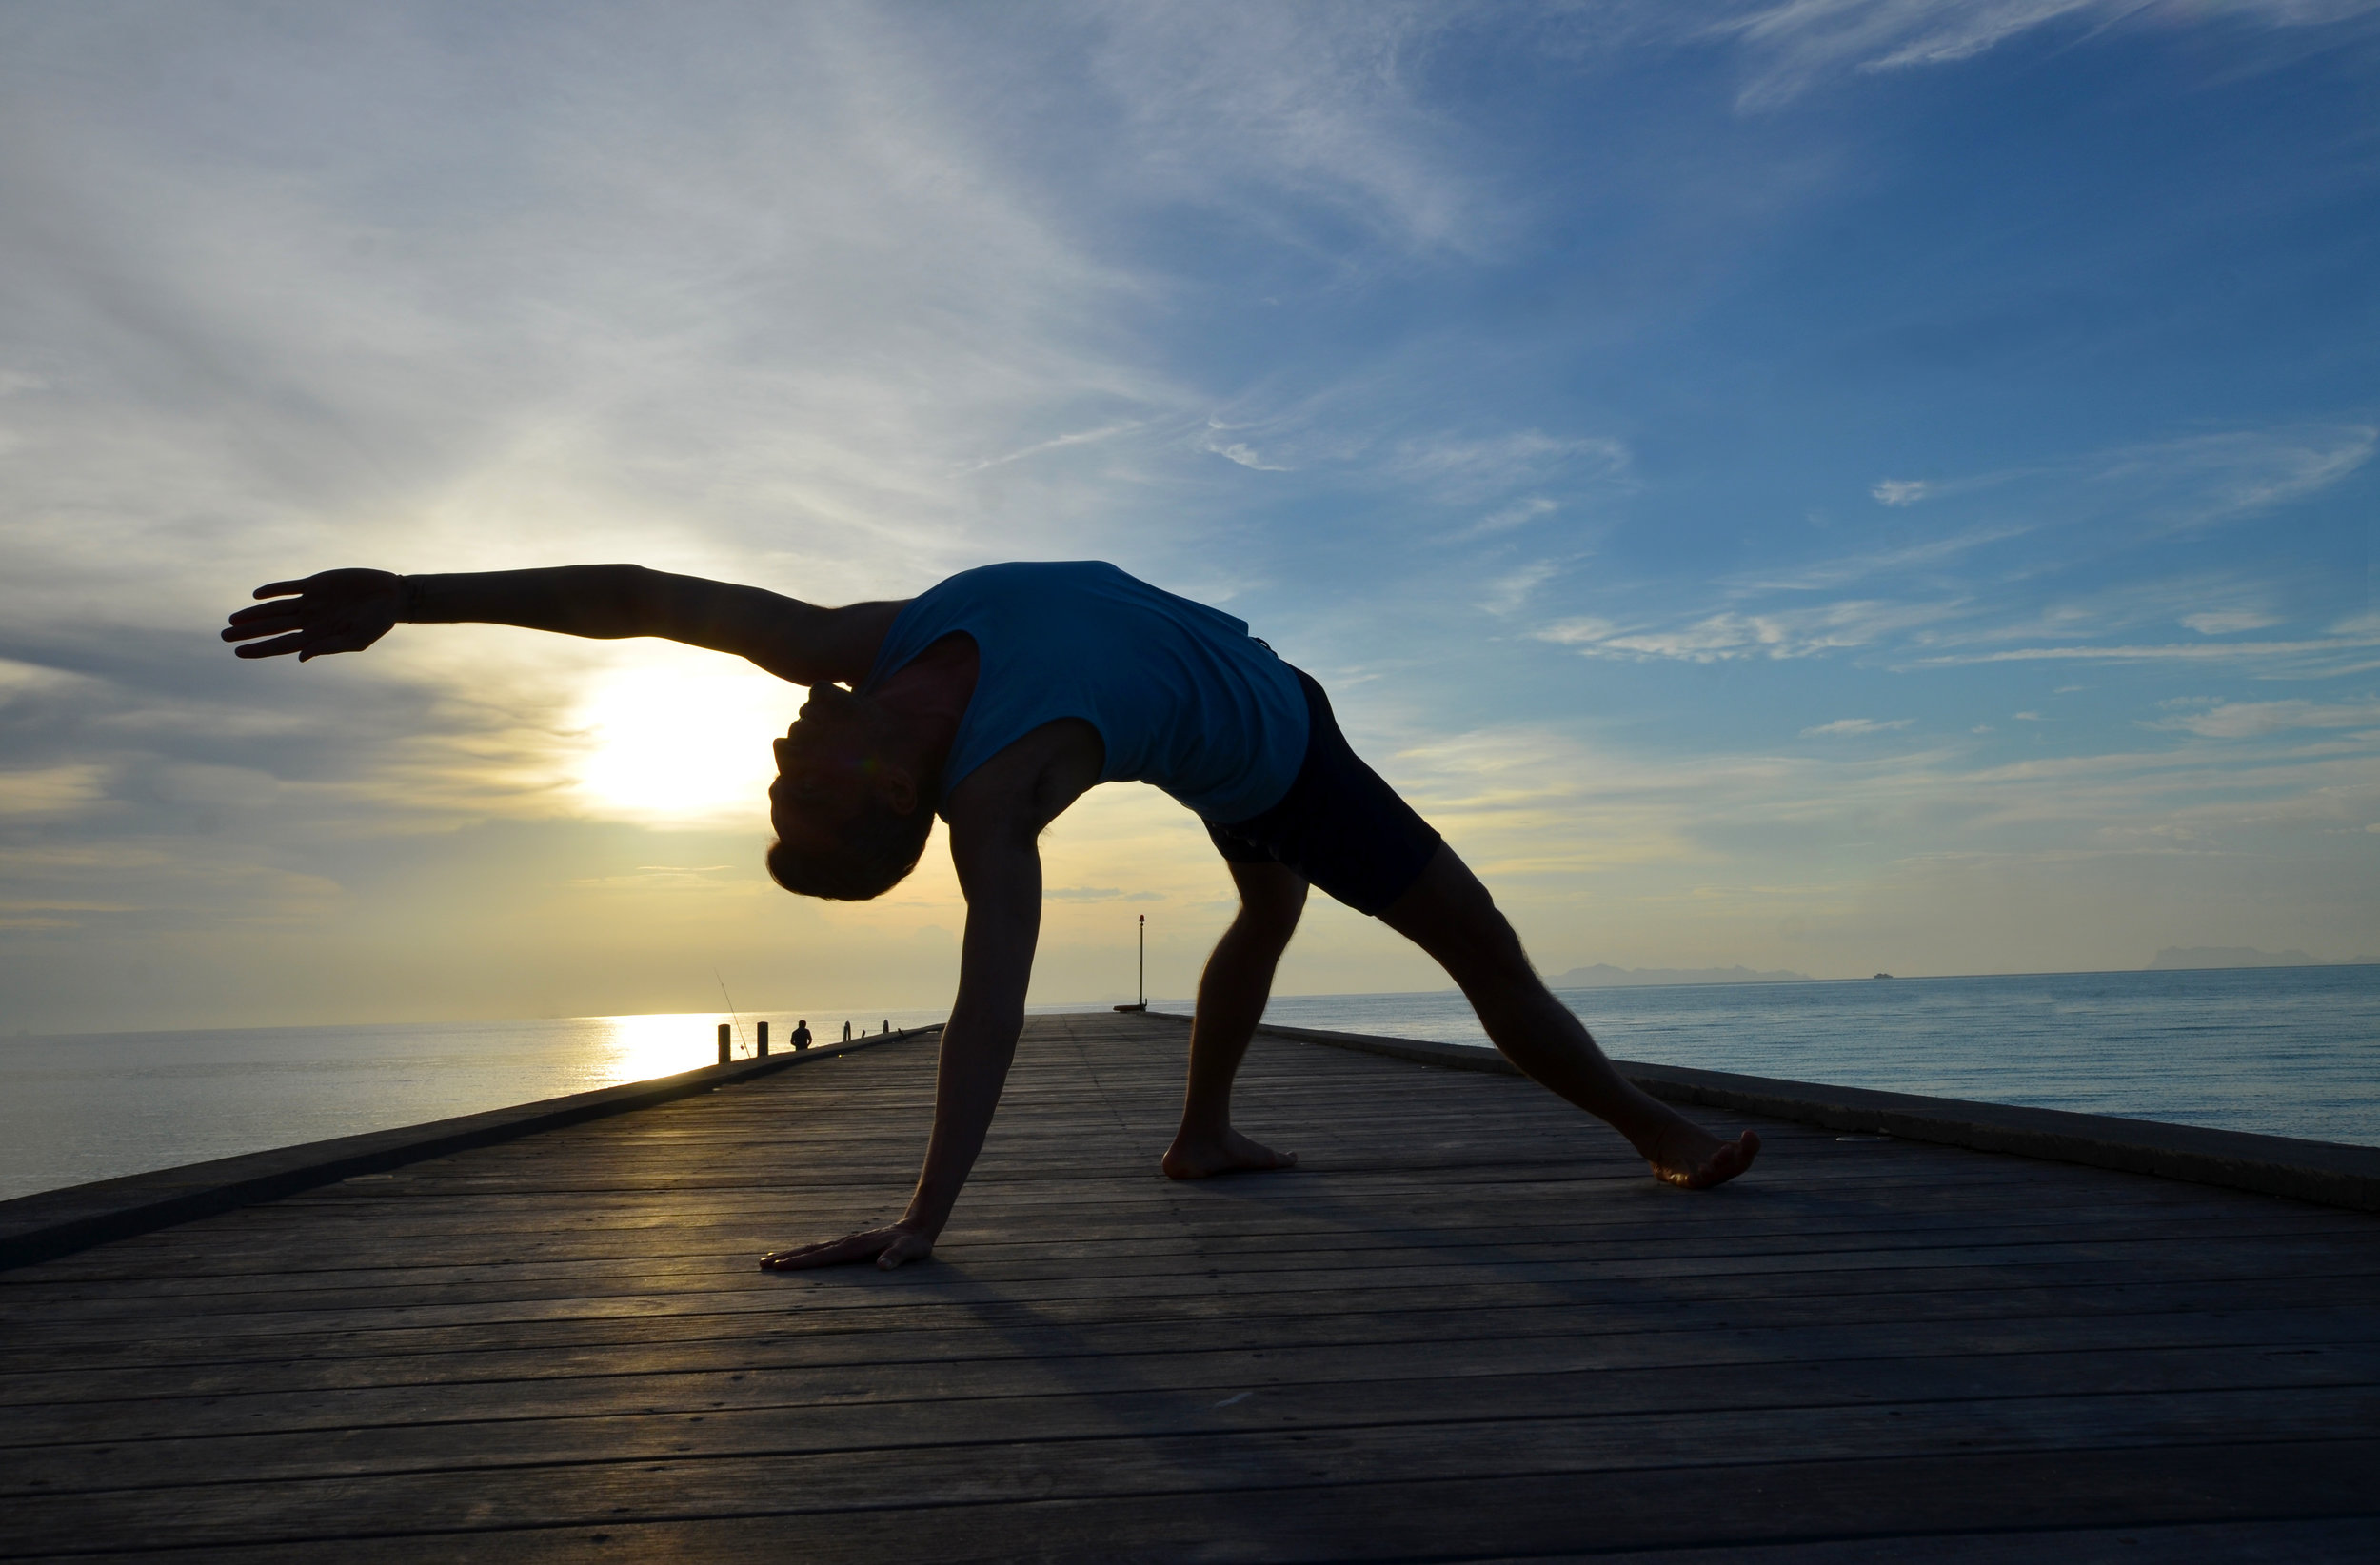 A serene blue sunset, in Koh Samui, Thailand, with Manuel de la Torre, yoga and fitness instructor at Samahita Retreat. His calm and supportive nature will help you practice in a meaningful manner. If you'd like to connect: @yogaconmanu.